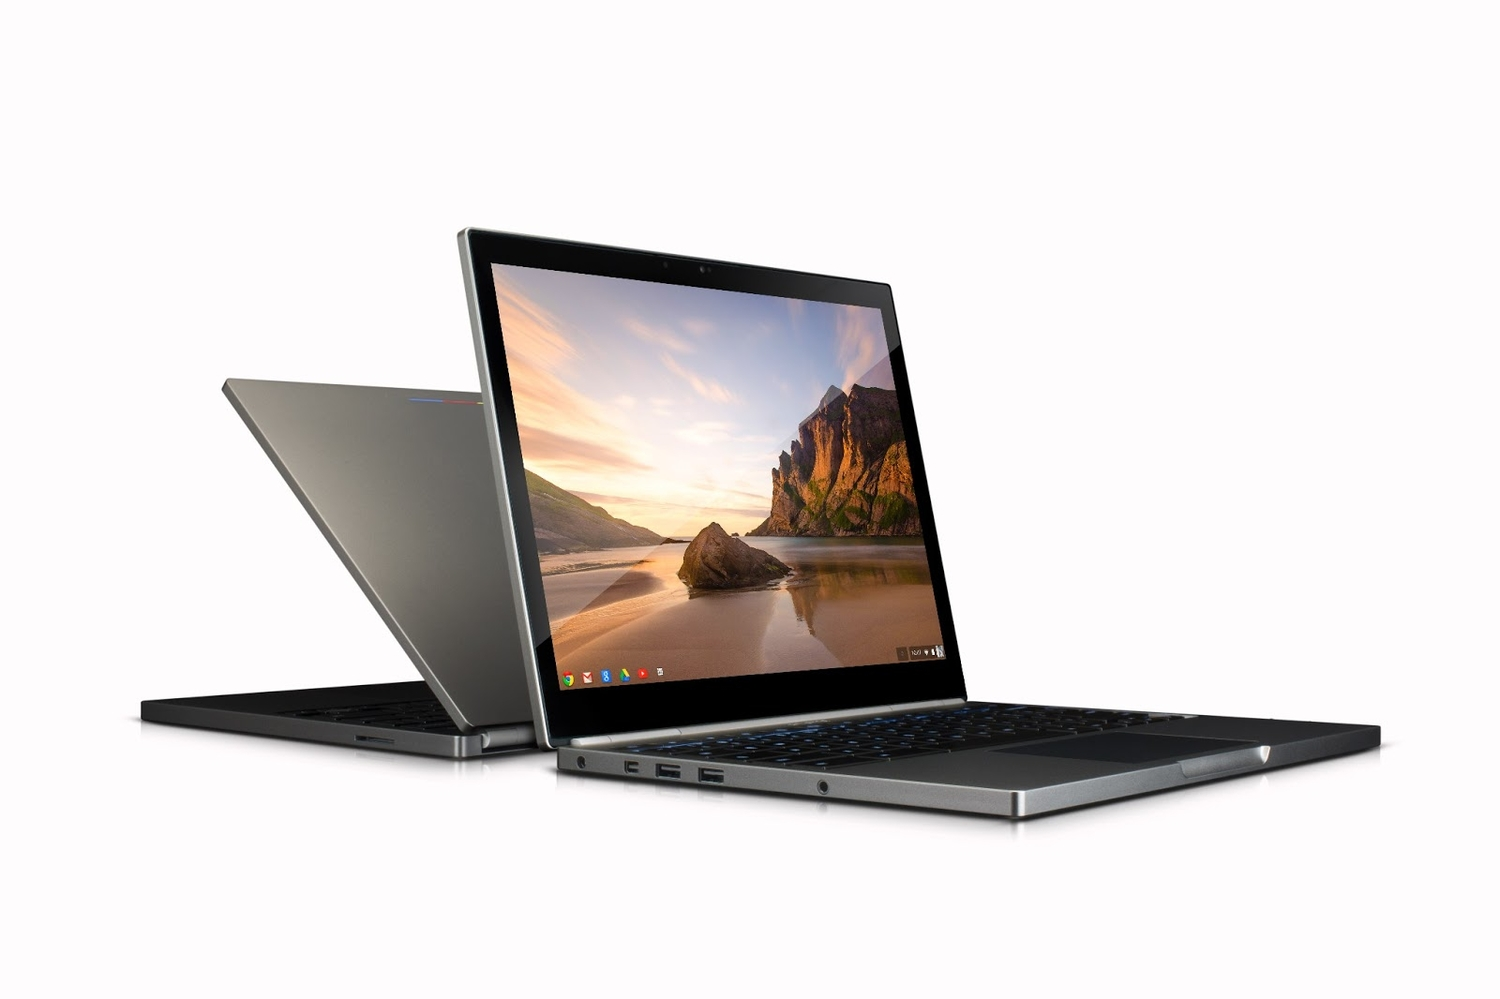 5 Reasons Why The Chromebook Pixel Is Better Than The New MacBook